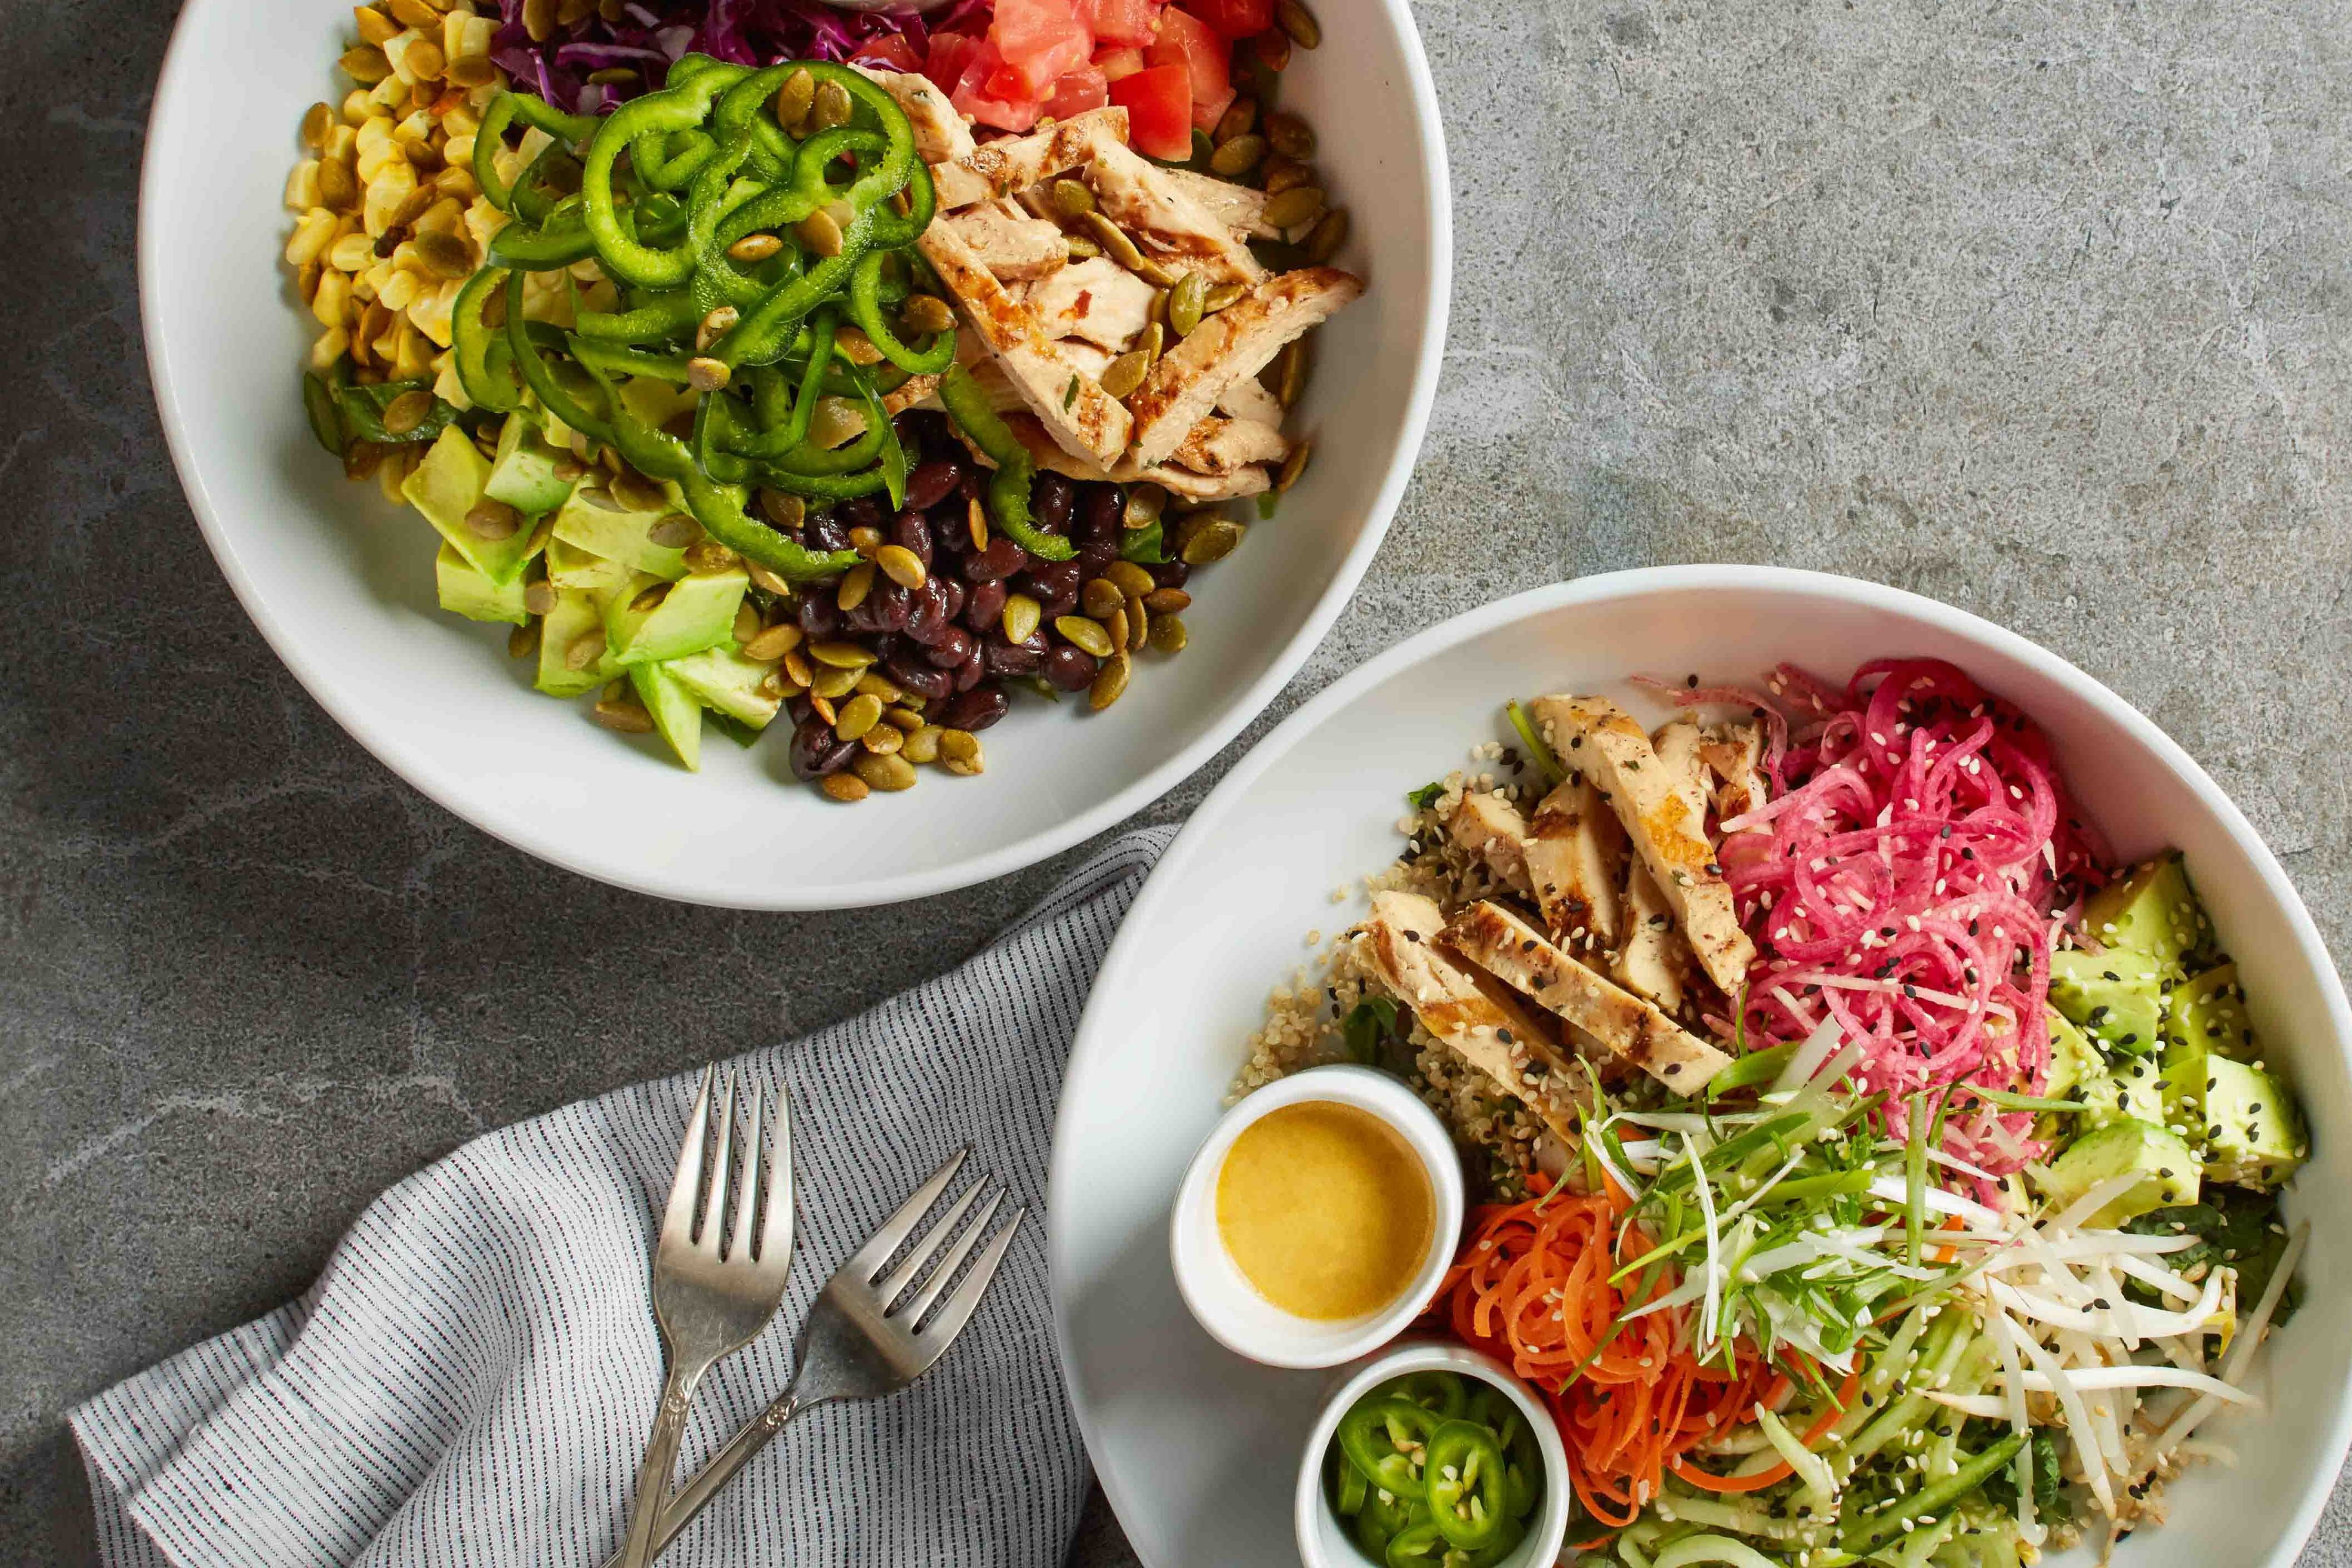 California Pizza Kitchen Welcomes Summer With Fresh New Seasonal Menu Light Healthful Options And More Business Wire